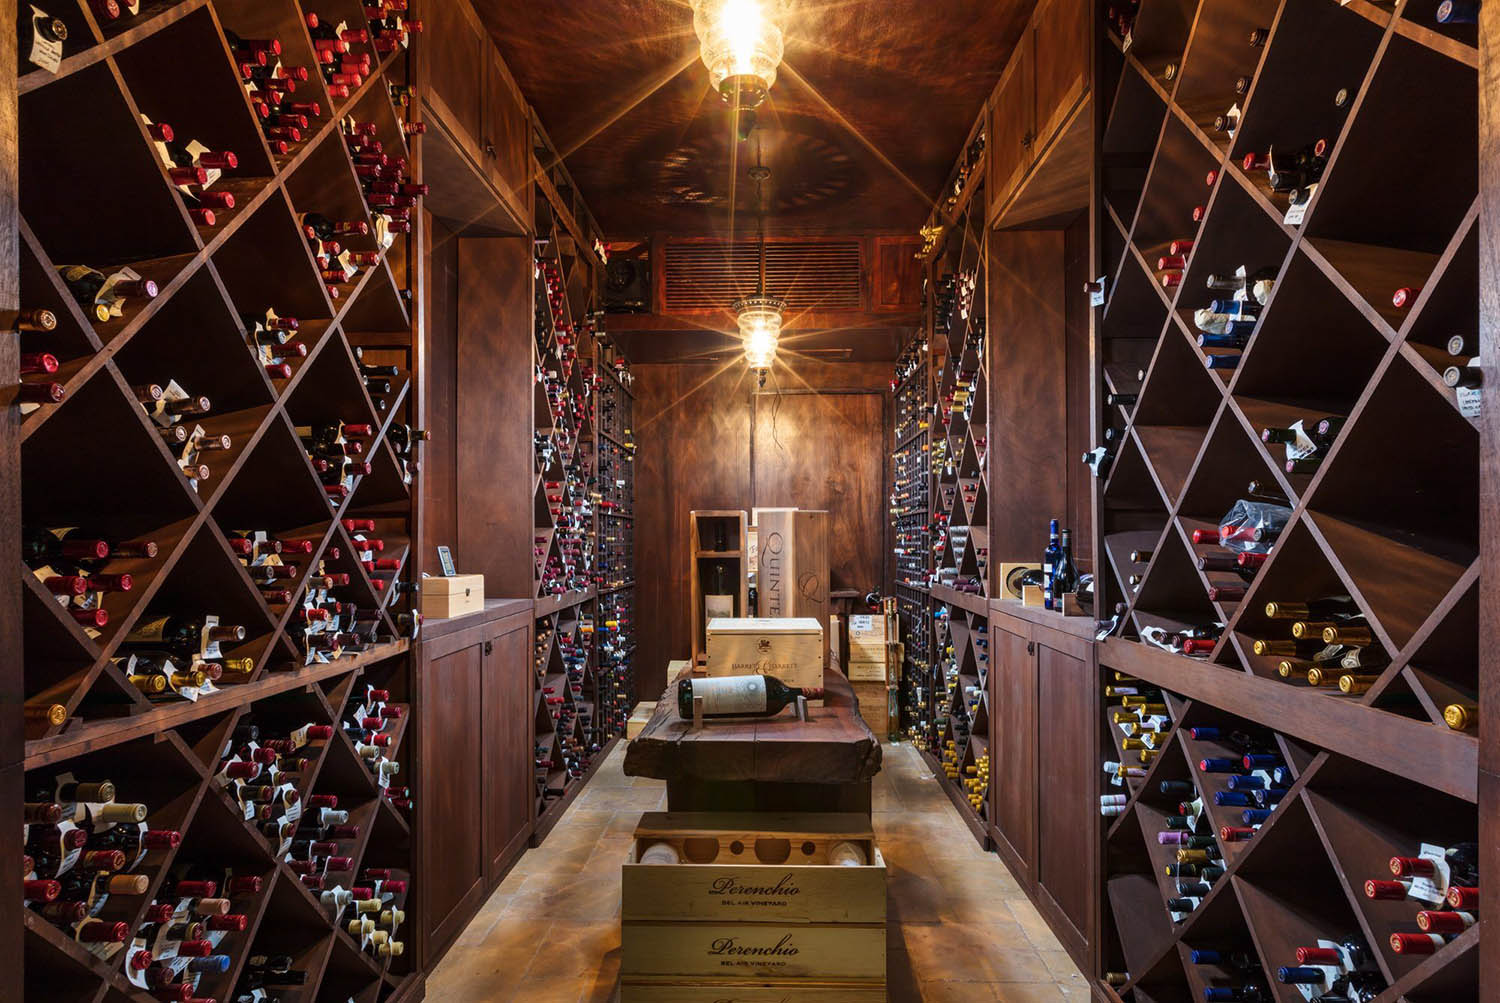 Wine cellar with a variety of storage designs. Individual, diamond and square storage racks with countertop, shelves and center barrel.